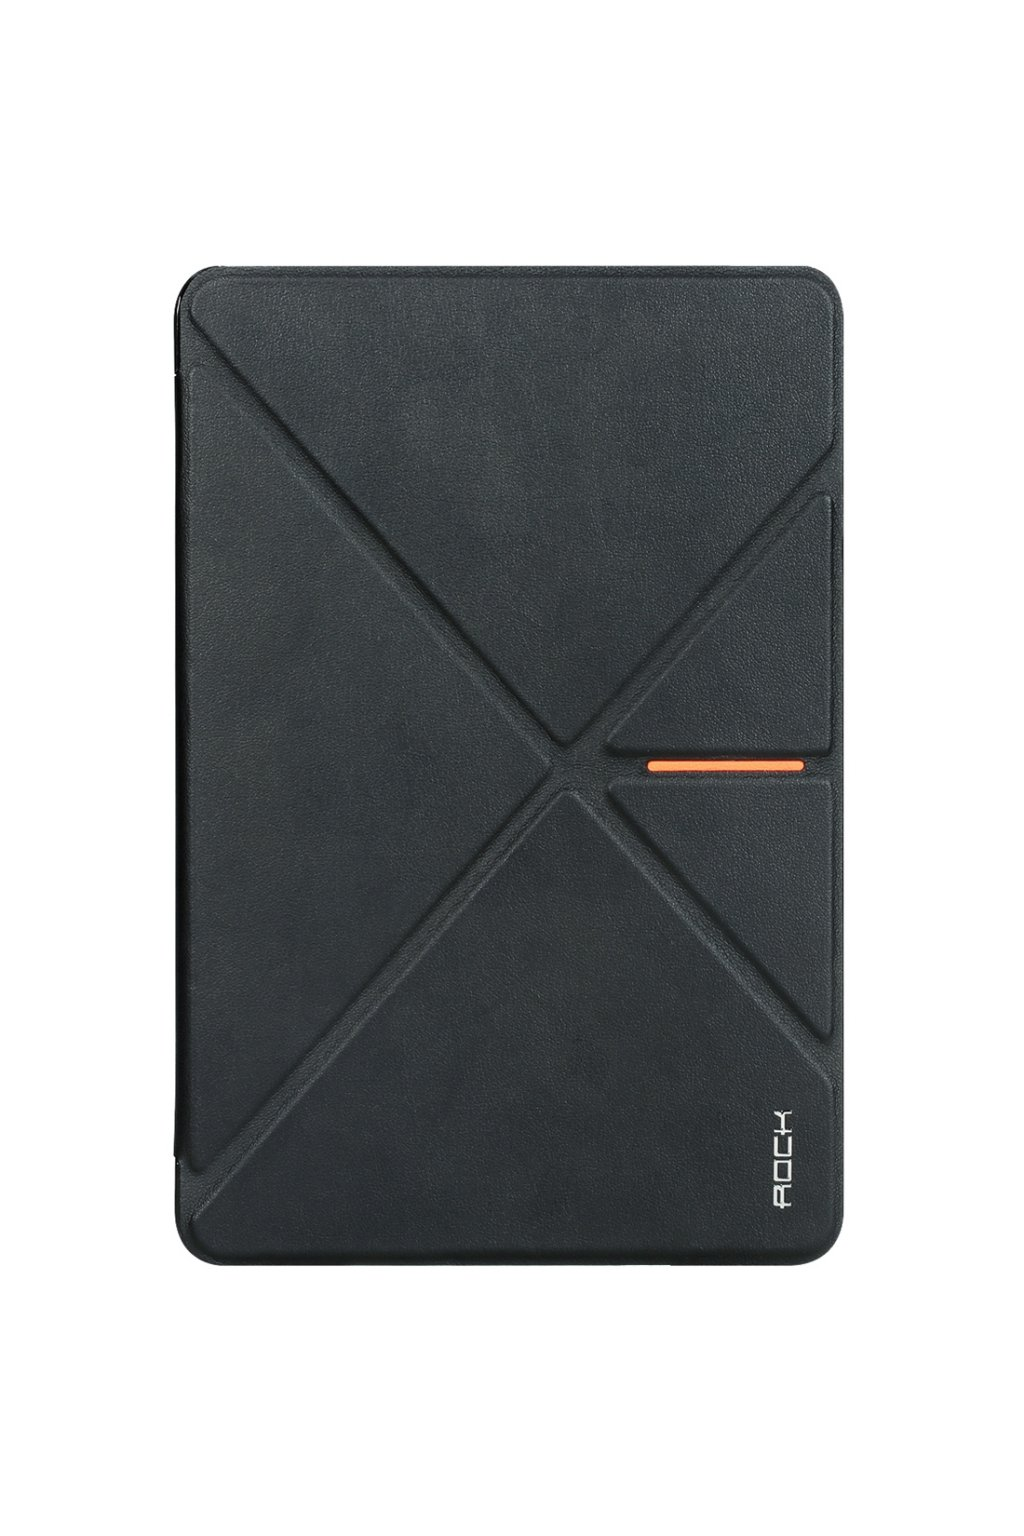 Pouzdro flip ROCK DeVita Apple iPad mini (2019)/ mini 4, black